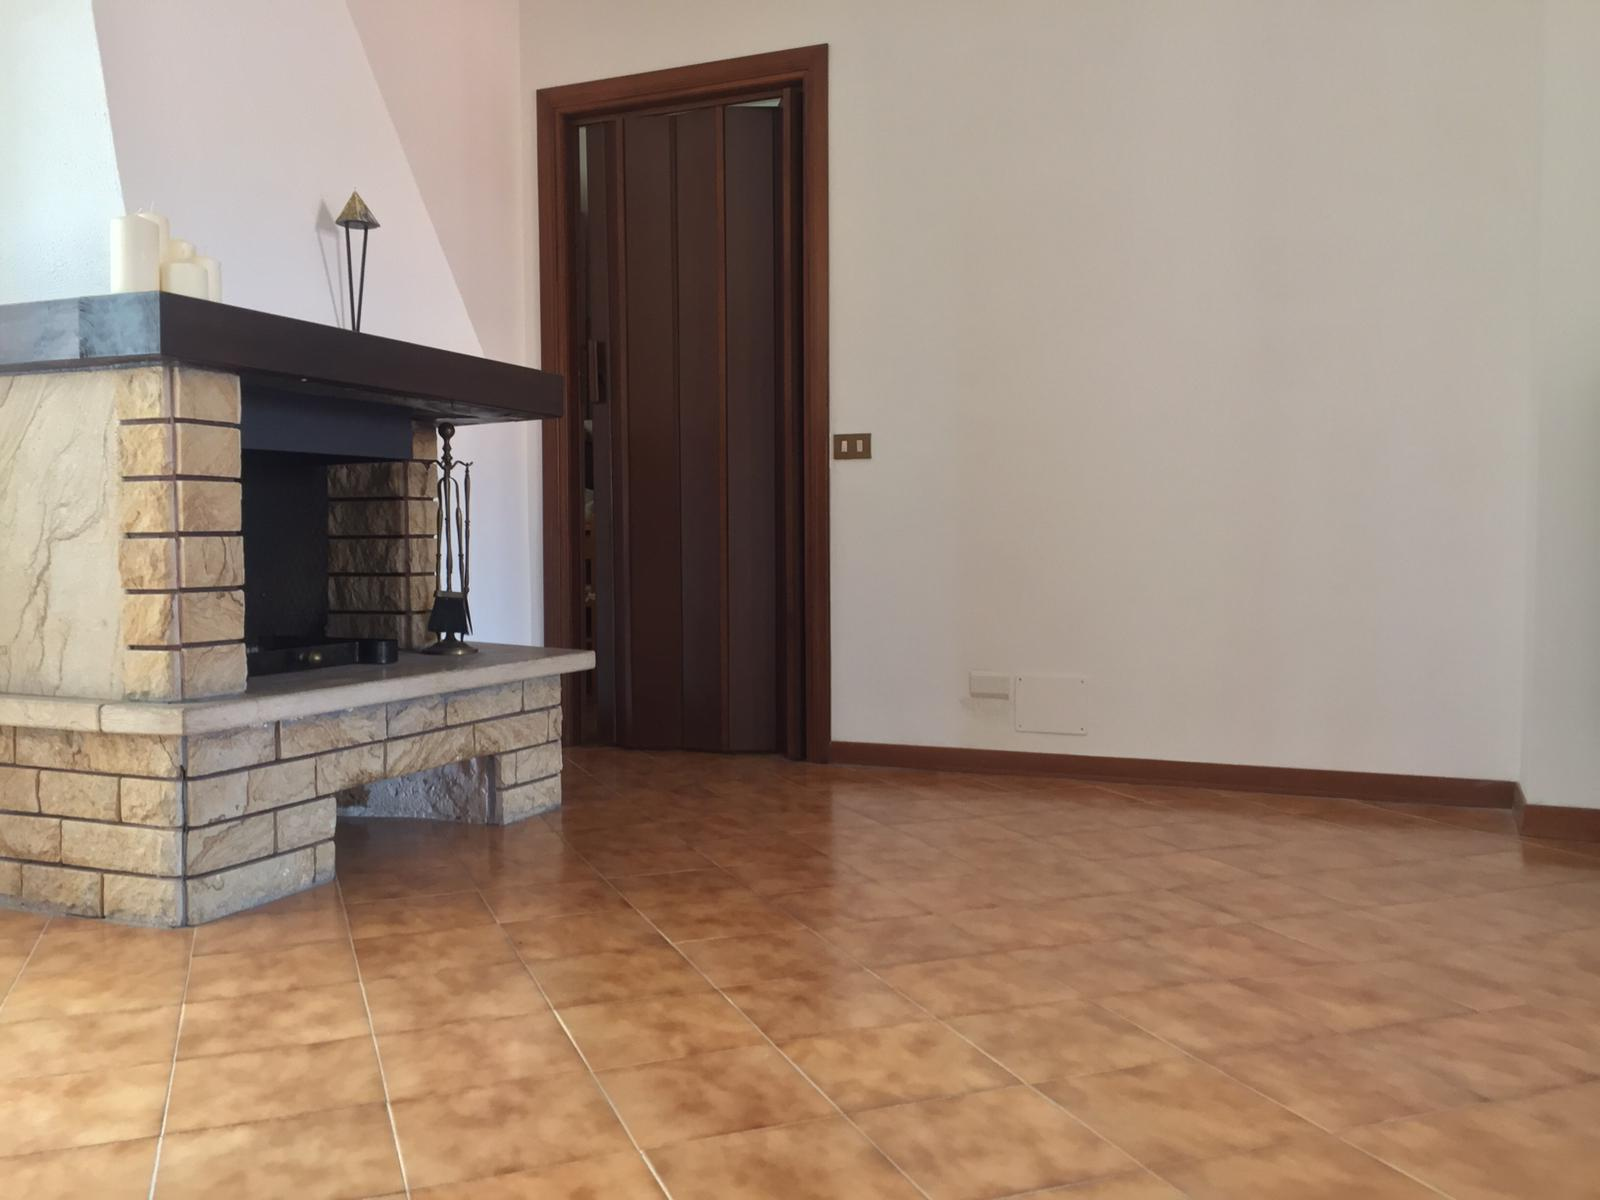 viterbo affitto quart: semicentro coldwell-banker-frg-&-partners